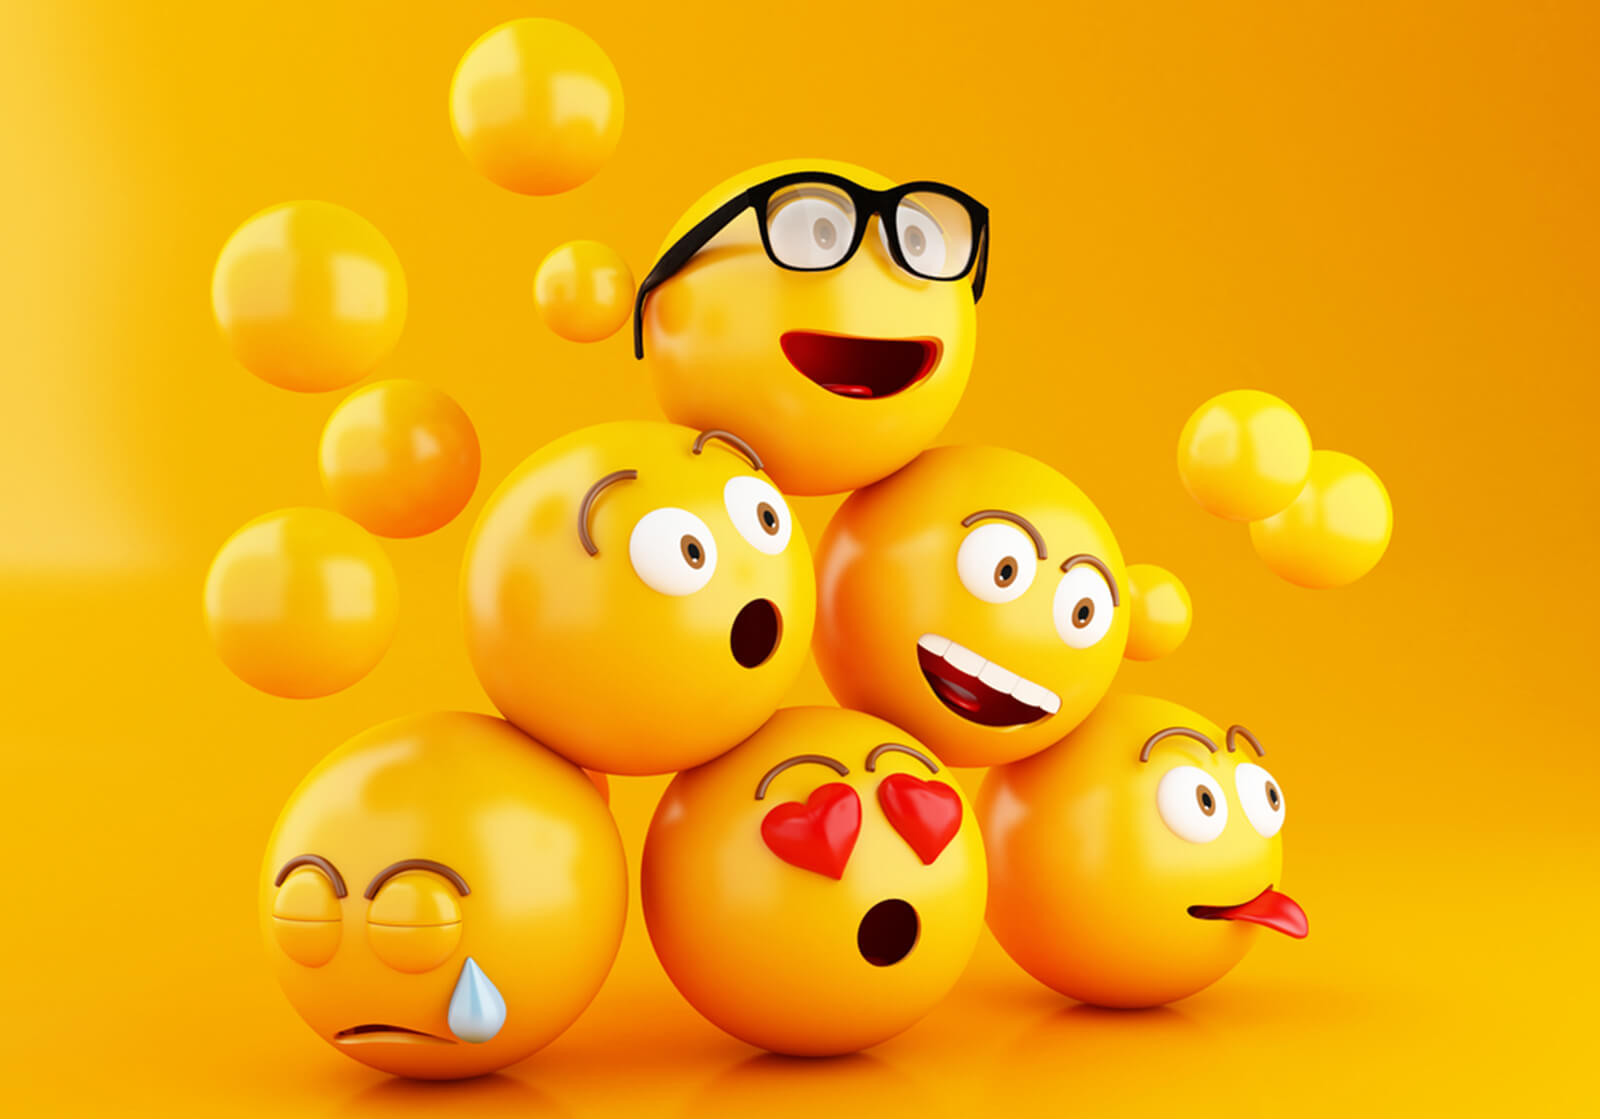 Emoji Marketing : Maîtrisez-vous l'art du smiley ?